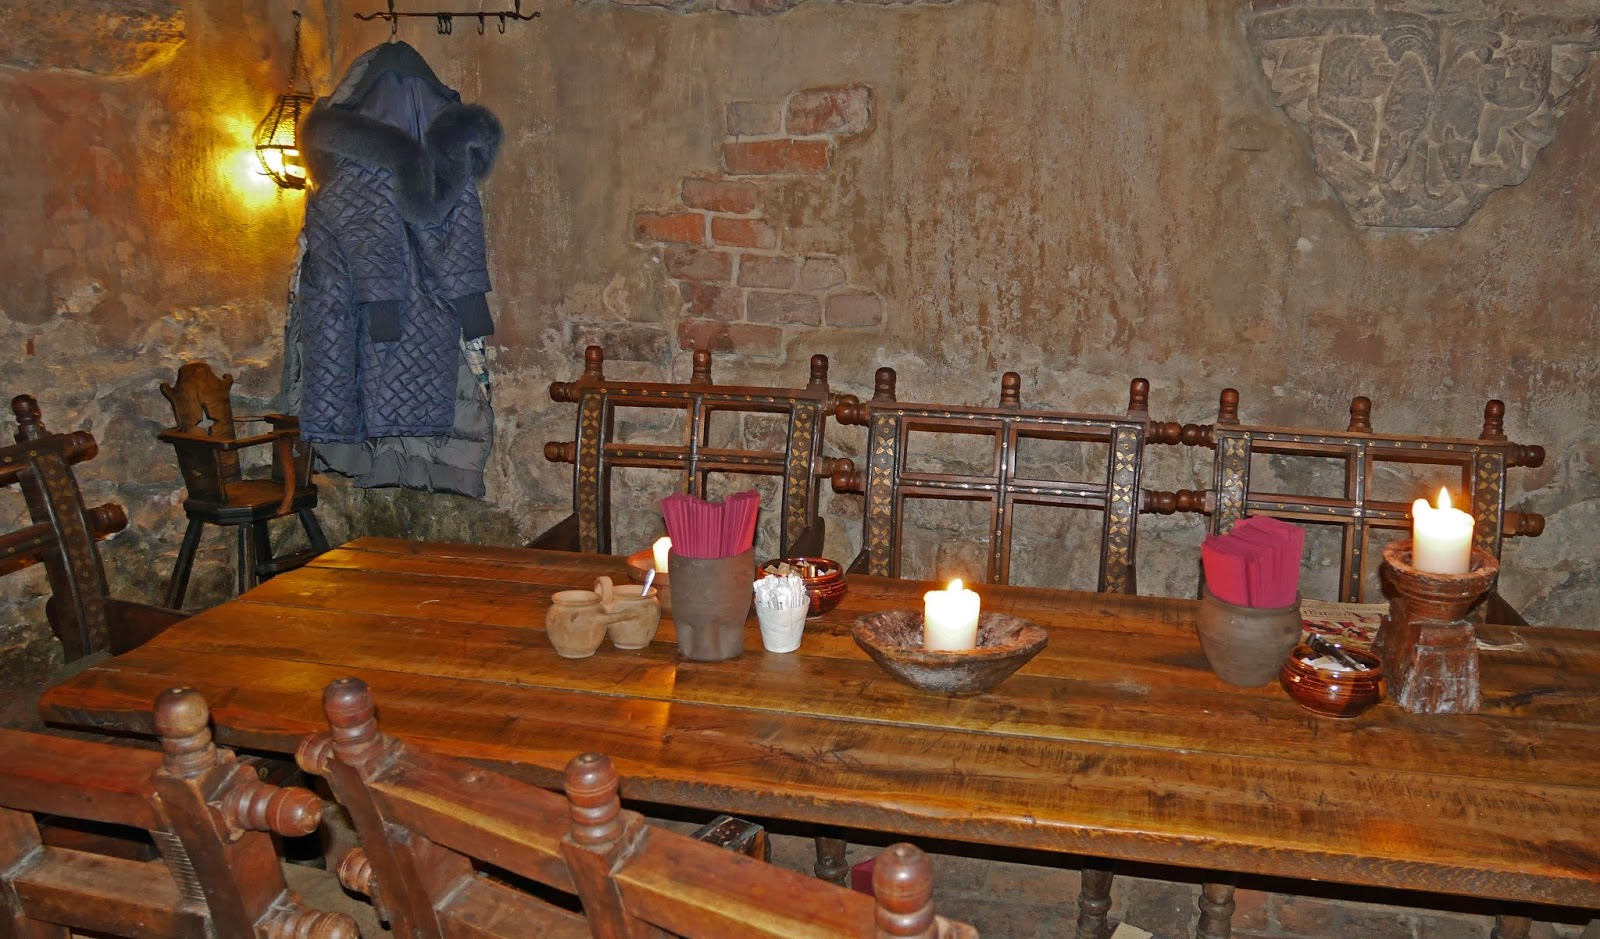 Table setup at Rozengrāls Medieval Restaurant in Riga, Latvia